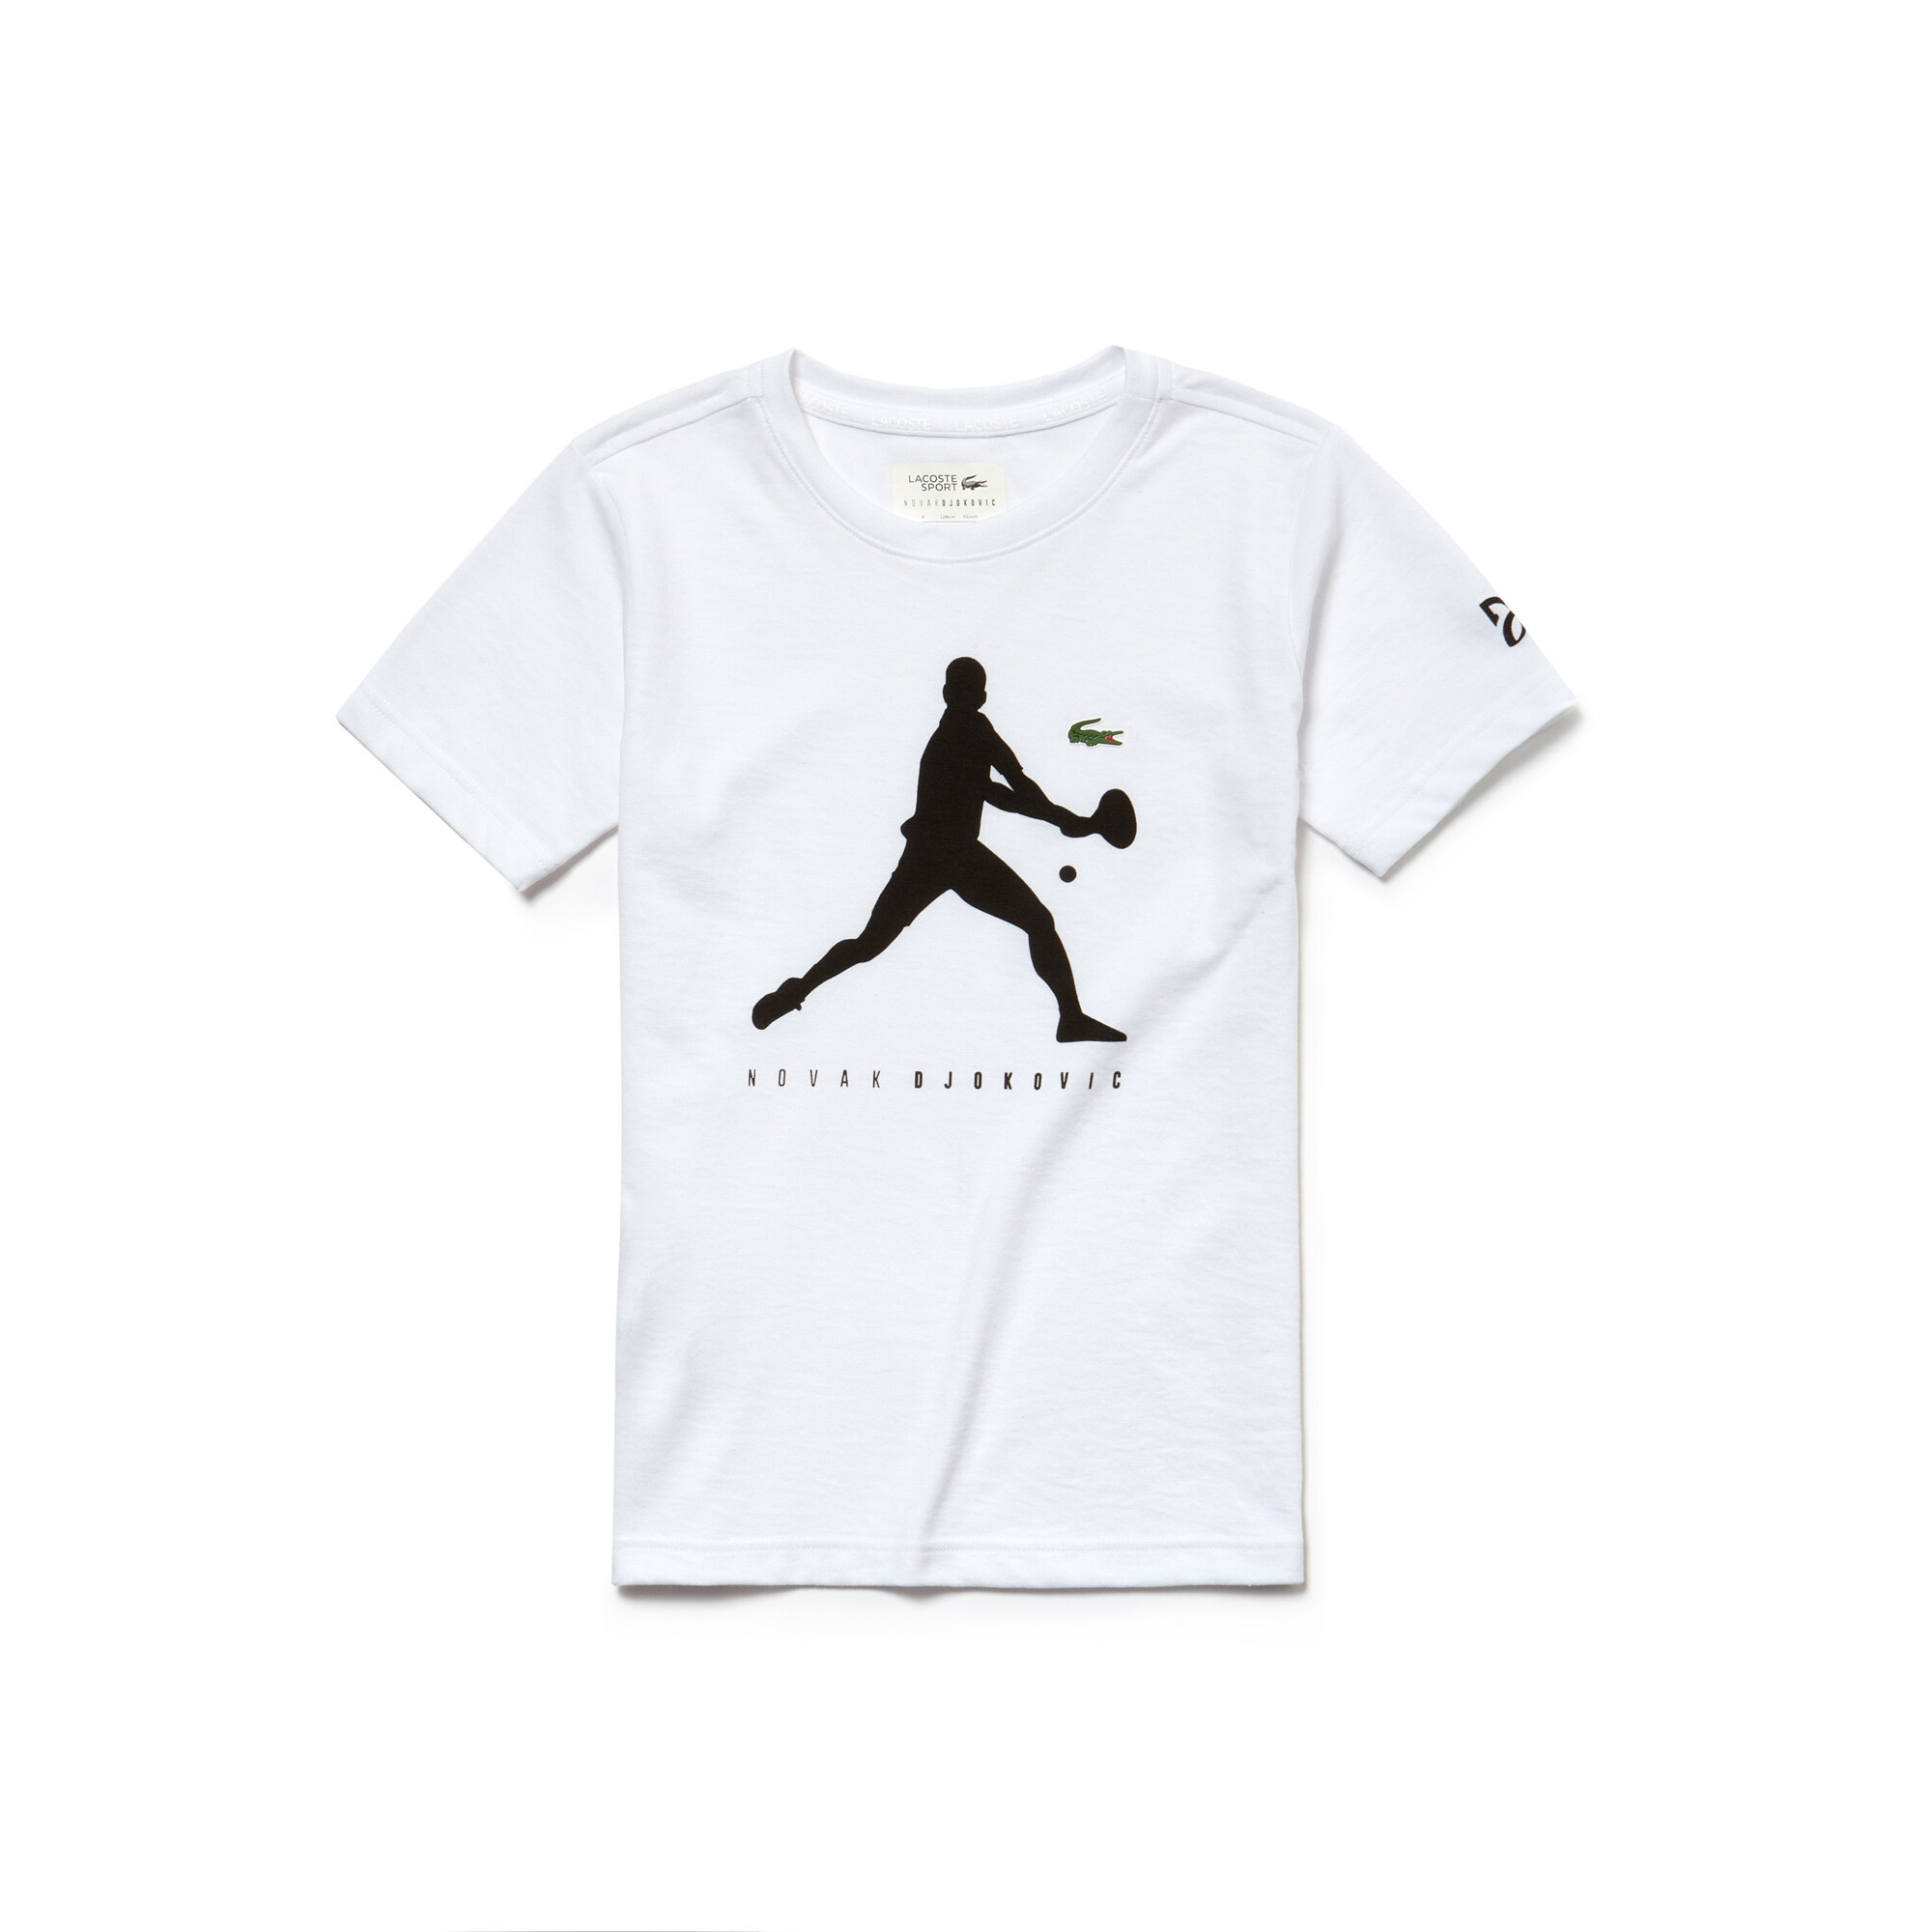 Camiseta Niño Lacoste Sport Novak Djokovic Support With Style Collection